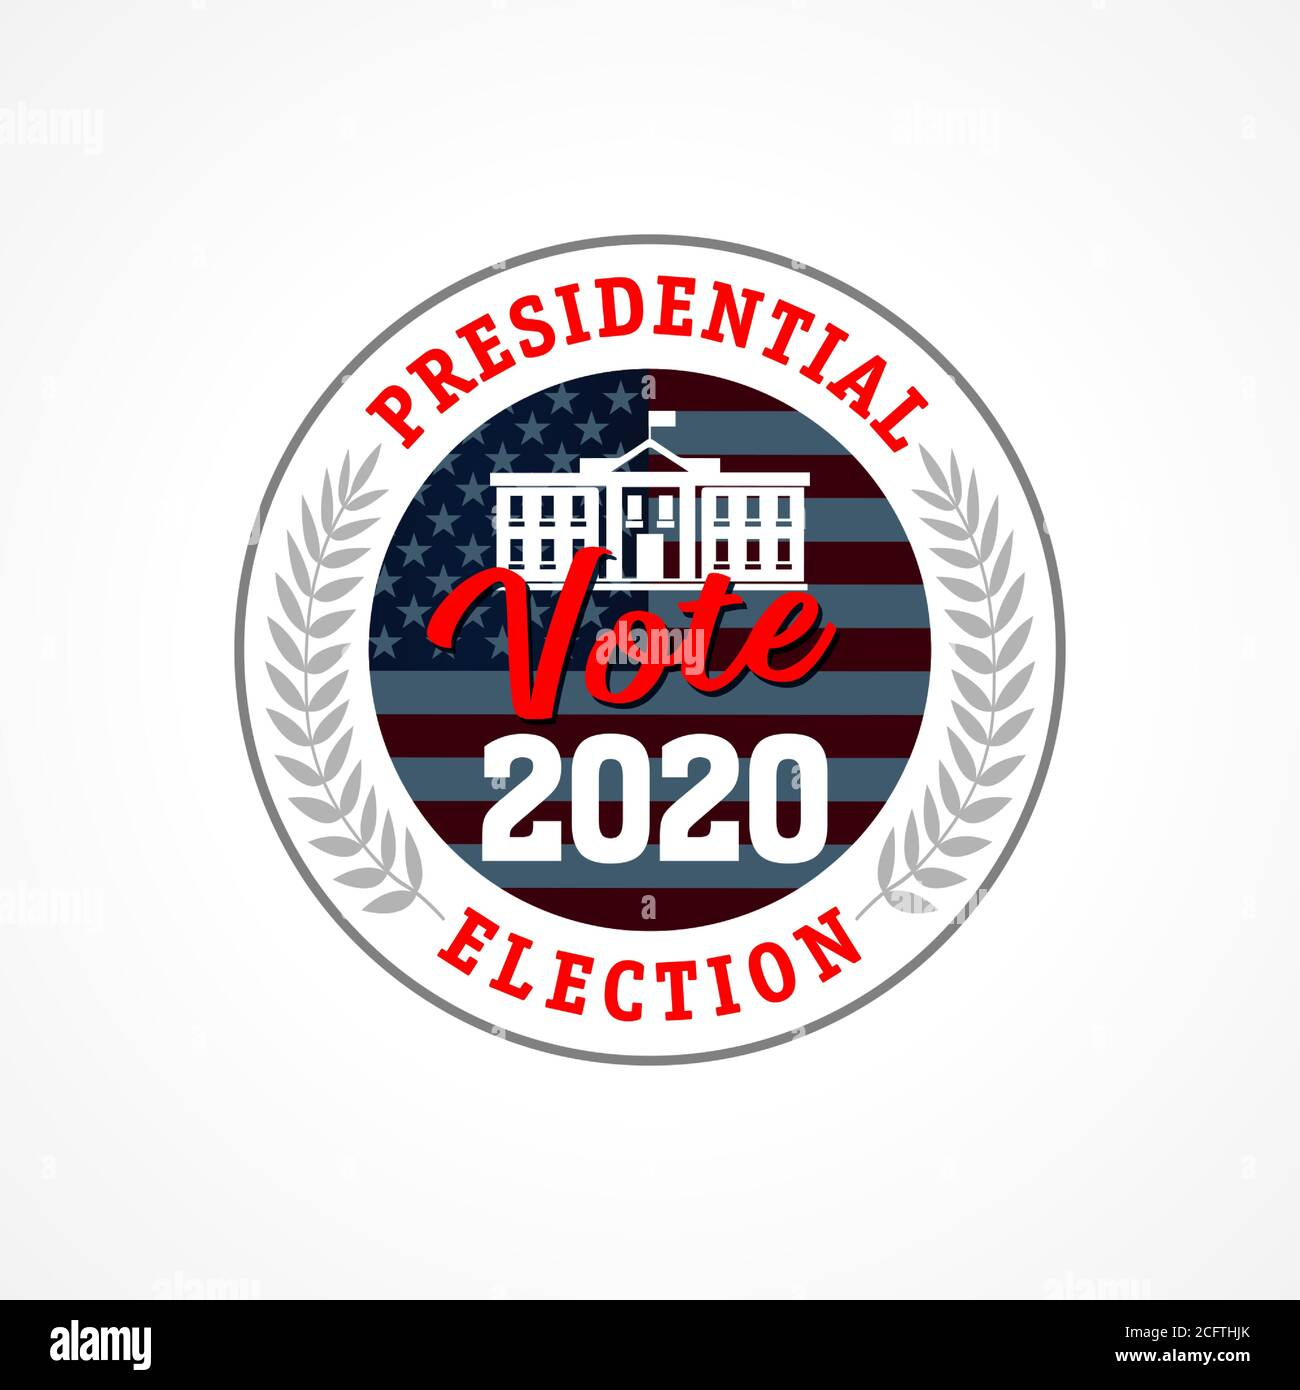 Presidential Election Usa Vote 2020 Emblem Election Day Amid American Flag Debate On The Us Presidential Election Election Voting Vector Template Stock Vector Image Art Alamy